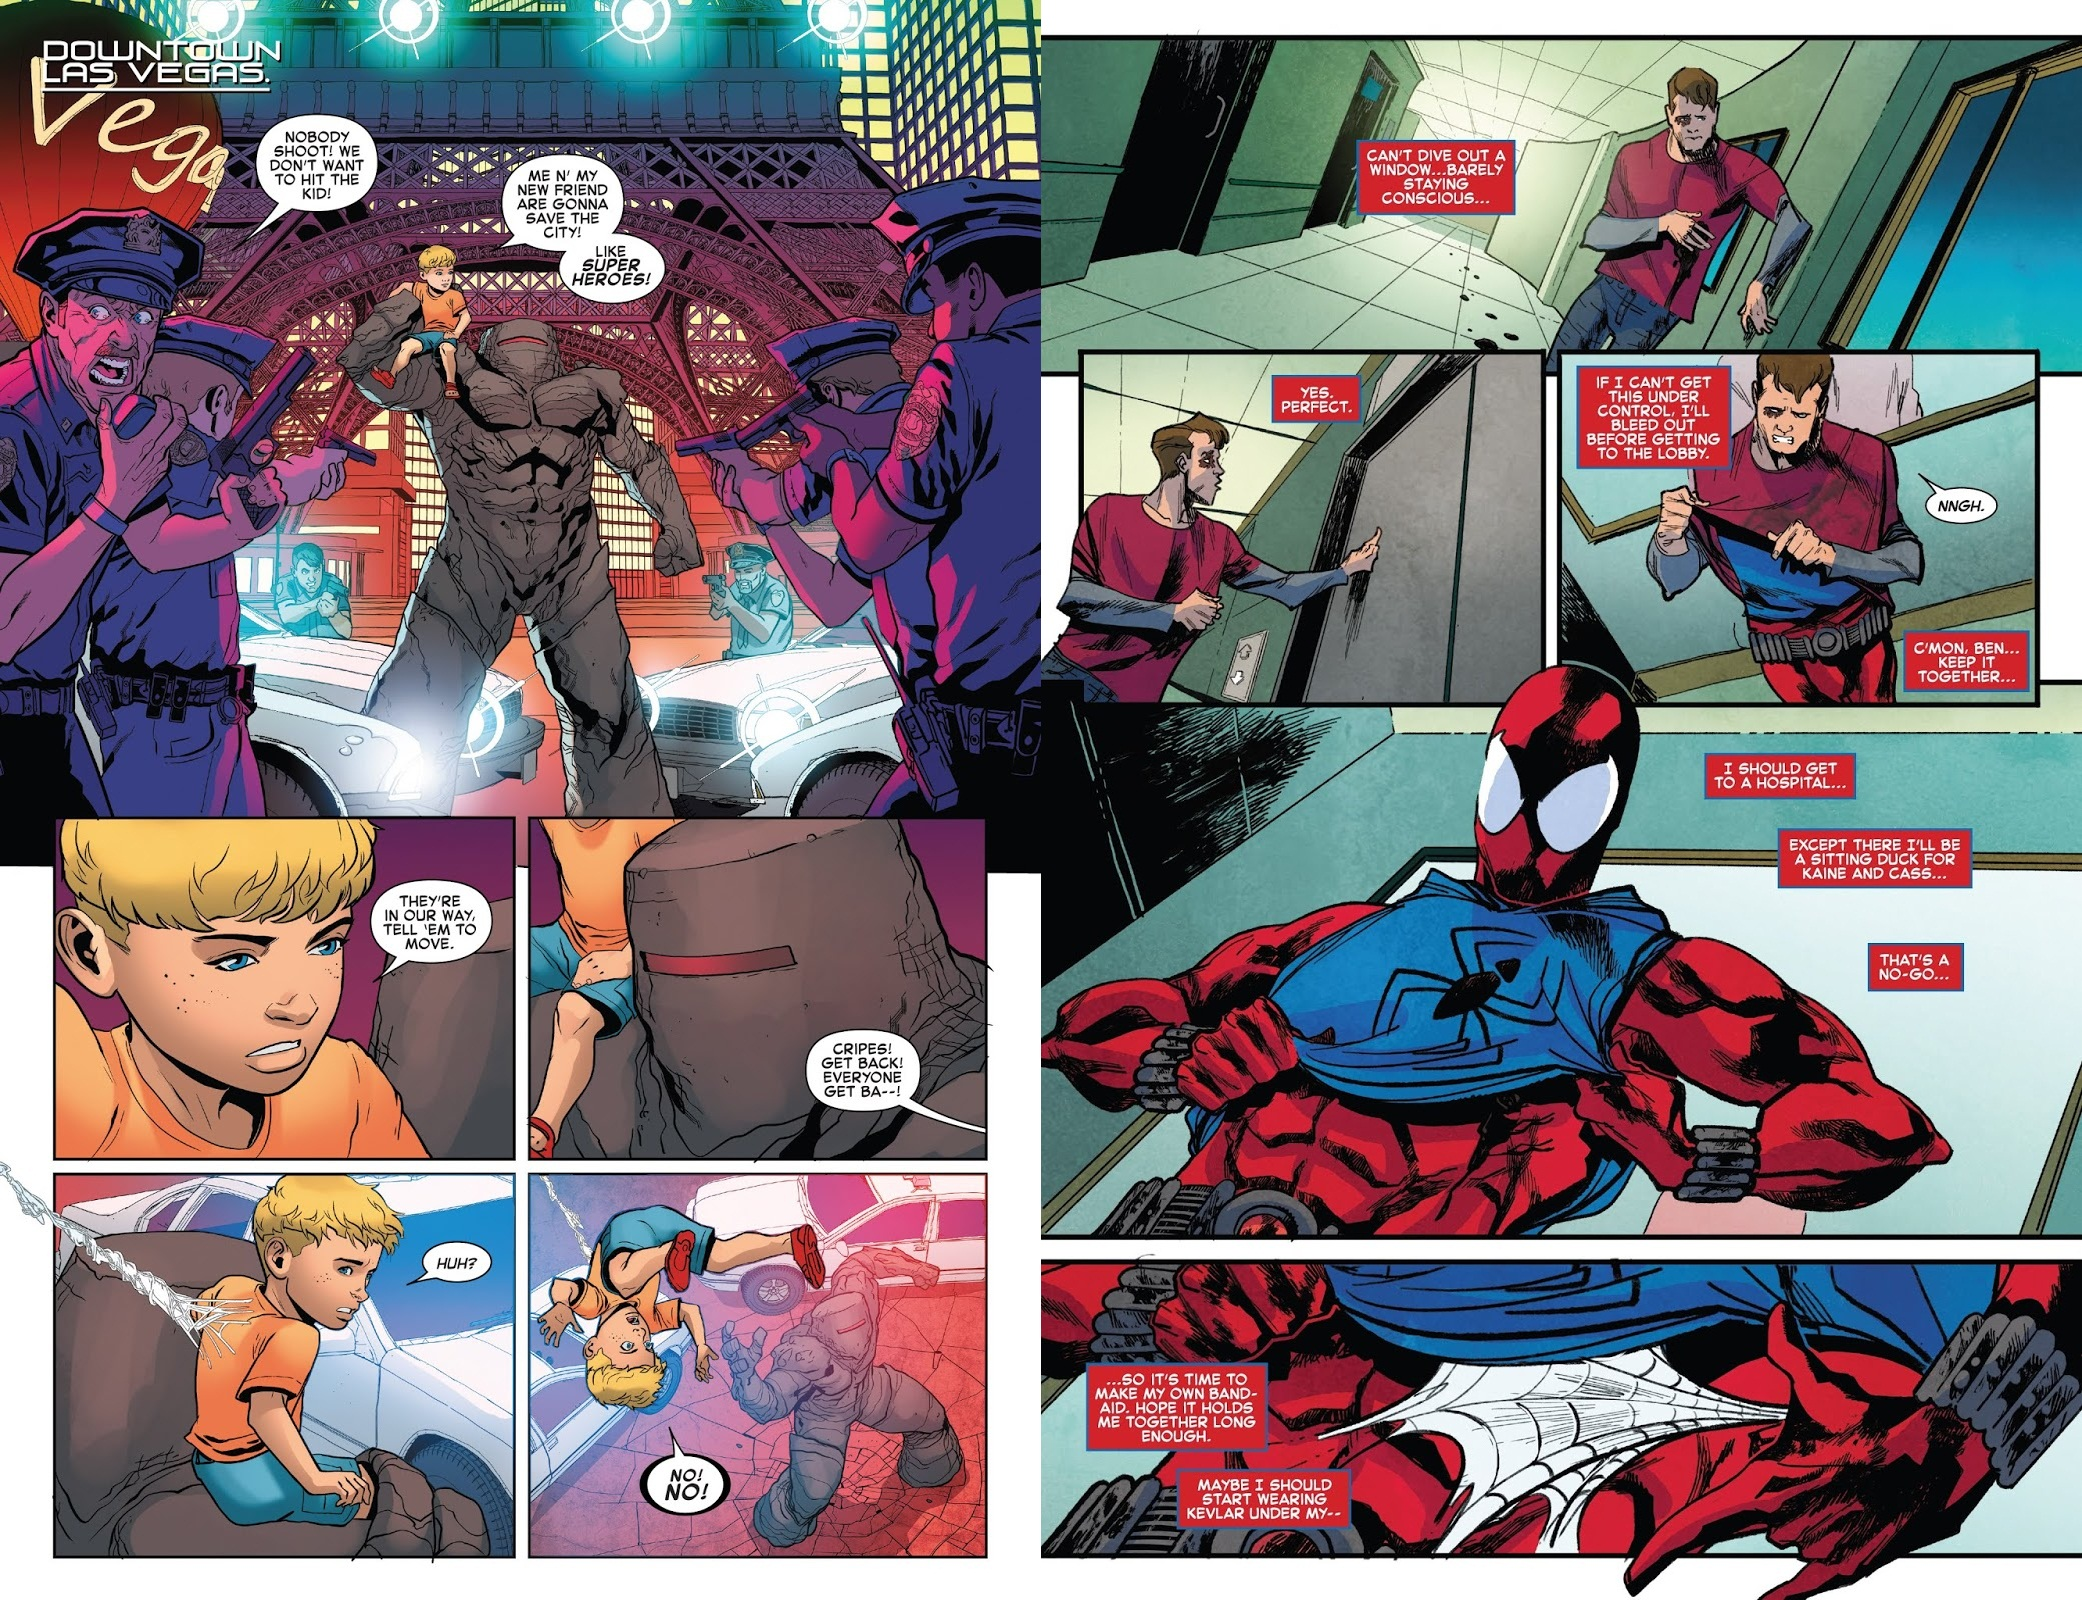 Ben Reilly Scarlet Spider Deal With the Devil review